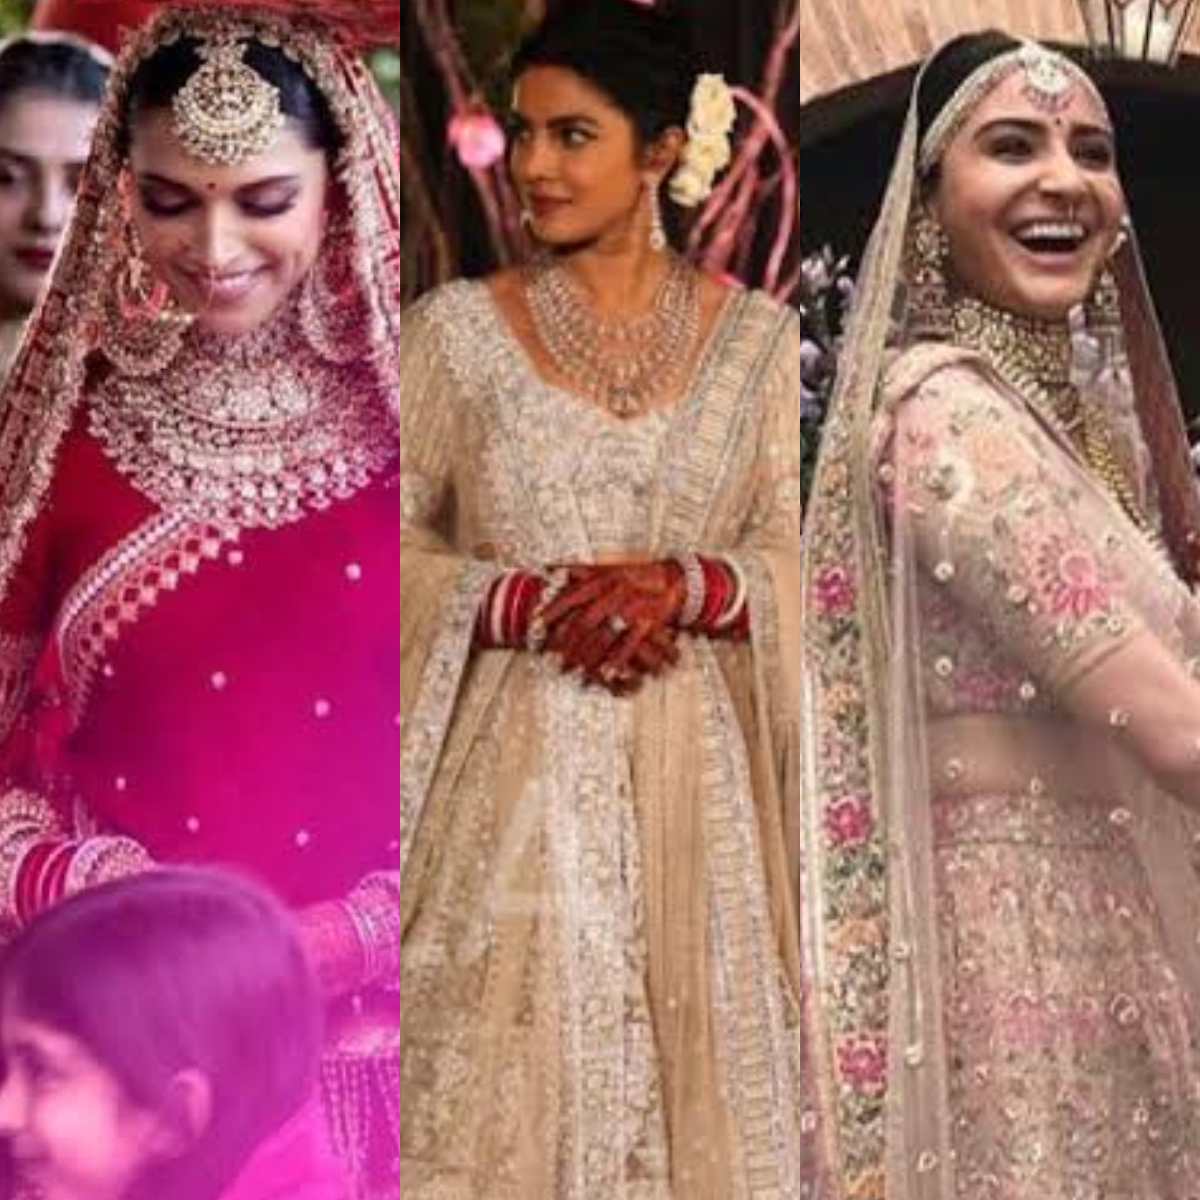 Deepika Padukone, Priyanka Chopra, Anushka Sharma: Major wedding trends you MUST look out for